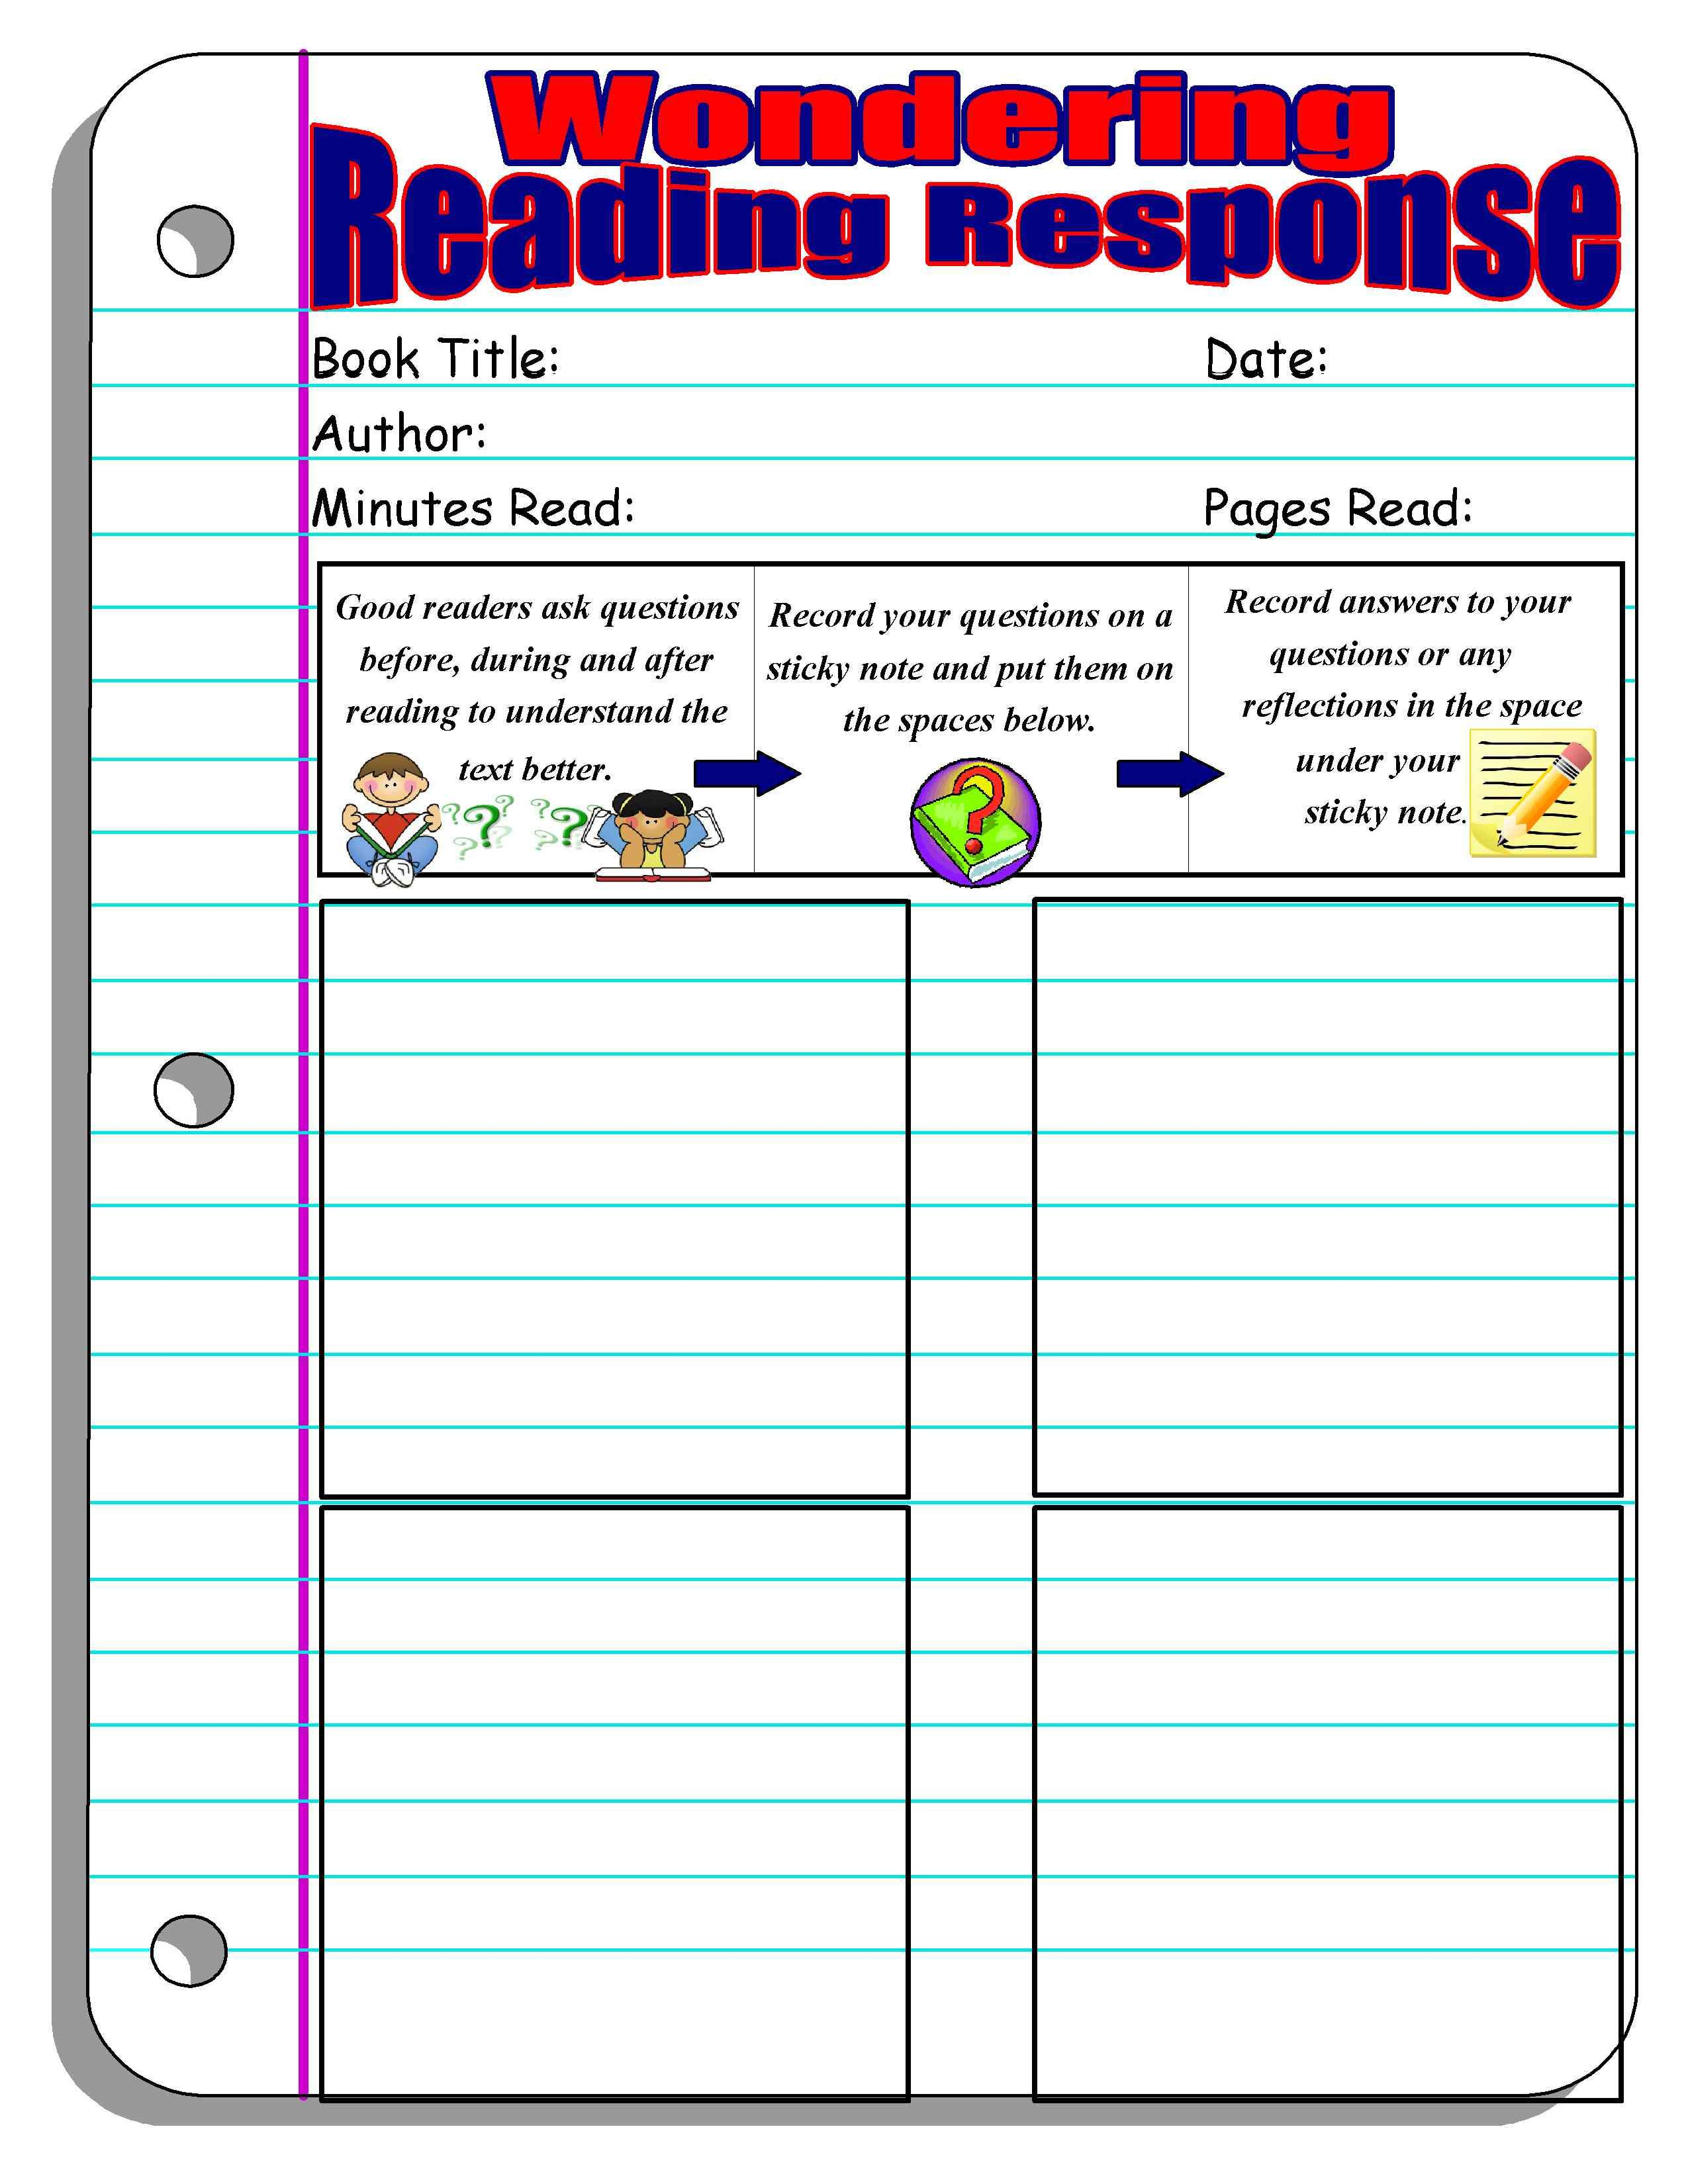 Graphic Organizers Illustrate Concepts And Relationships Between Concepts In A Text Or Using Di Reading Response Worksheets Reading Response Reading Worksheets [ 3300 x 2550 Pixel ]